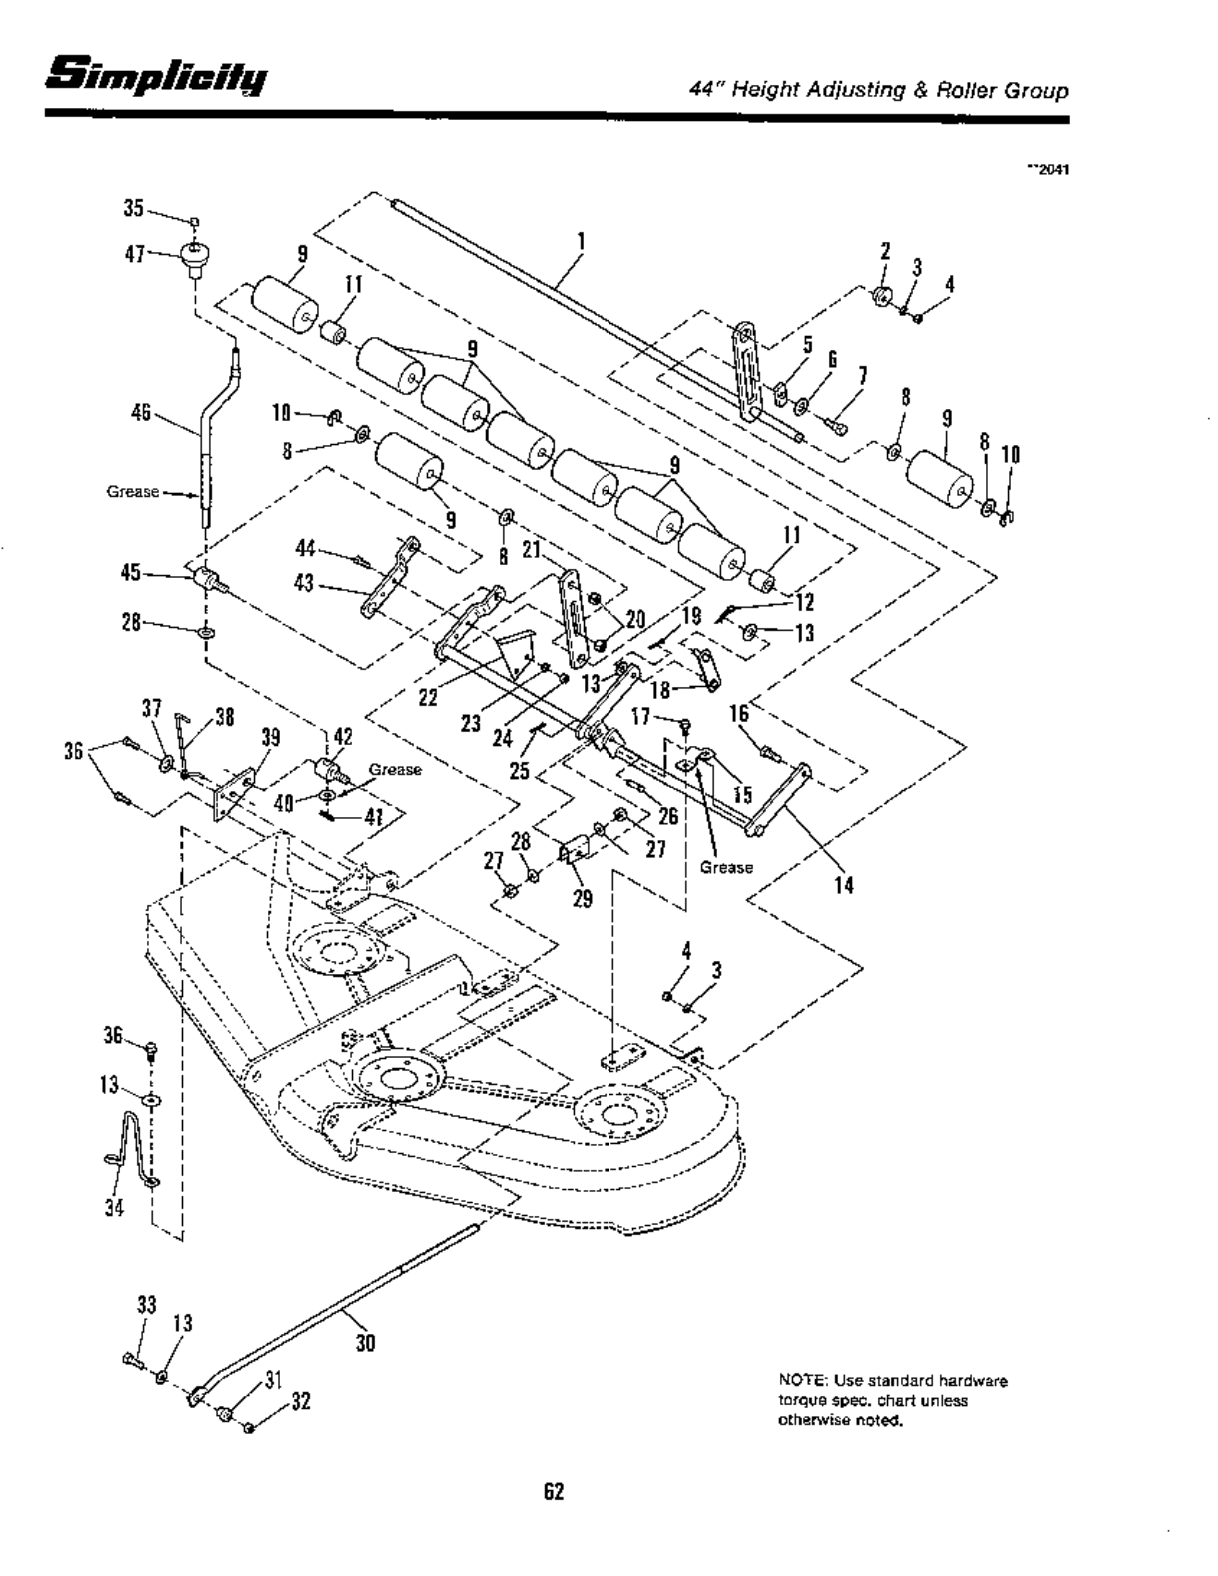 Page 64 of Simplicity Lawn Mower 12.5 LTH User Guide